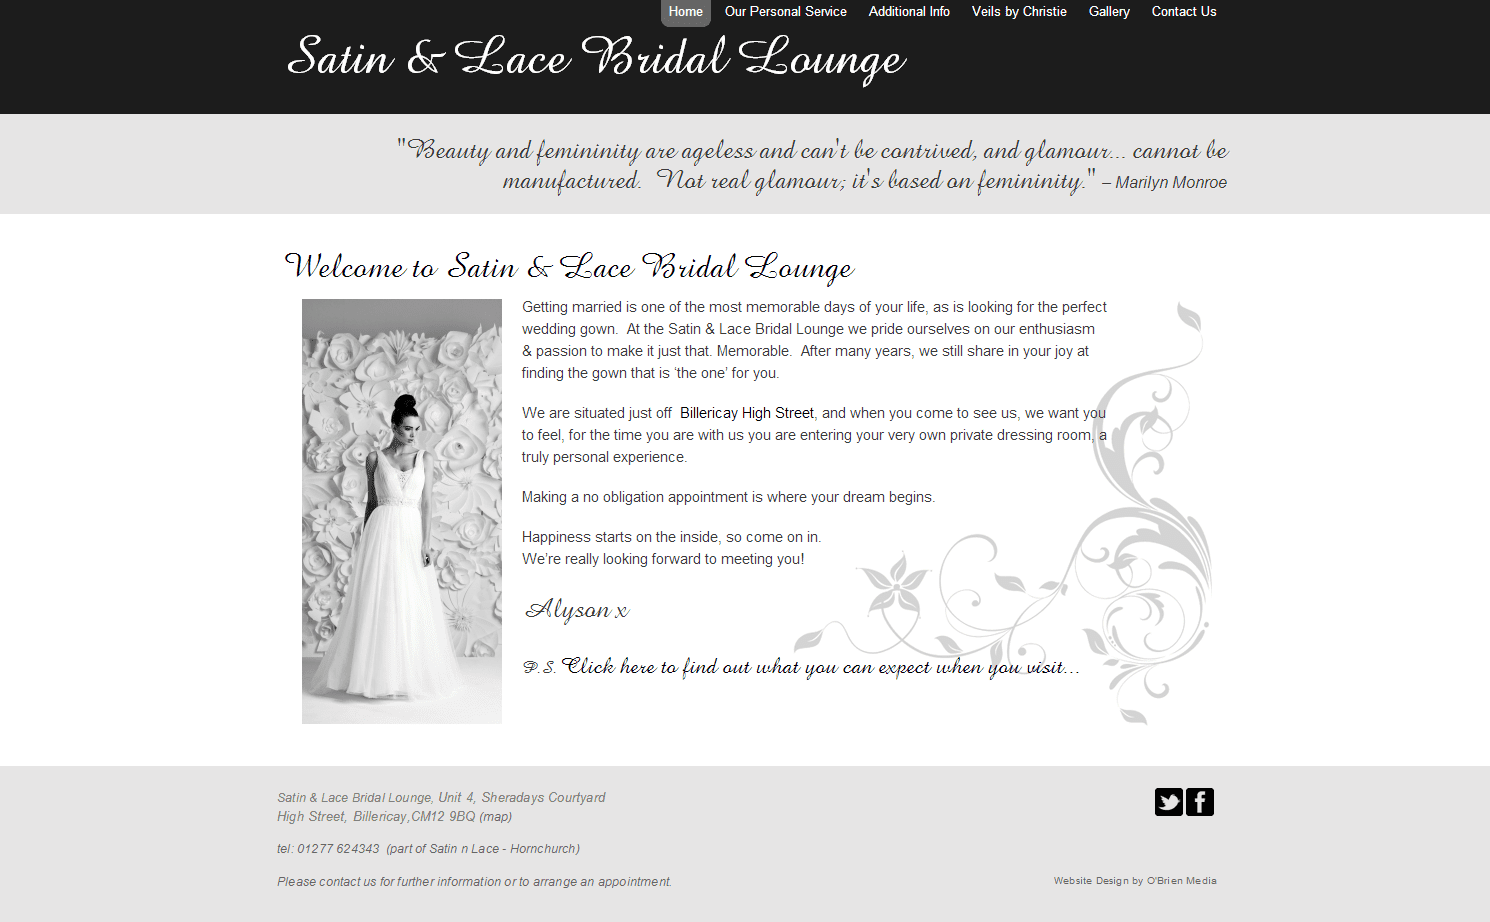 new-website-for-satin-and-lace-bridal-lounge.png